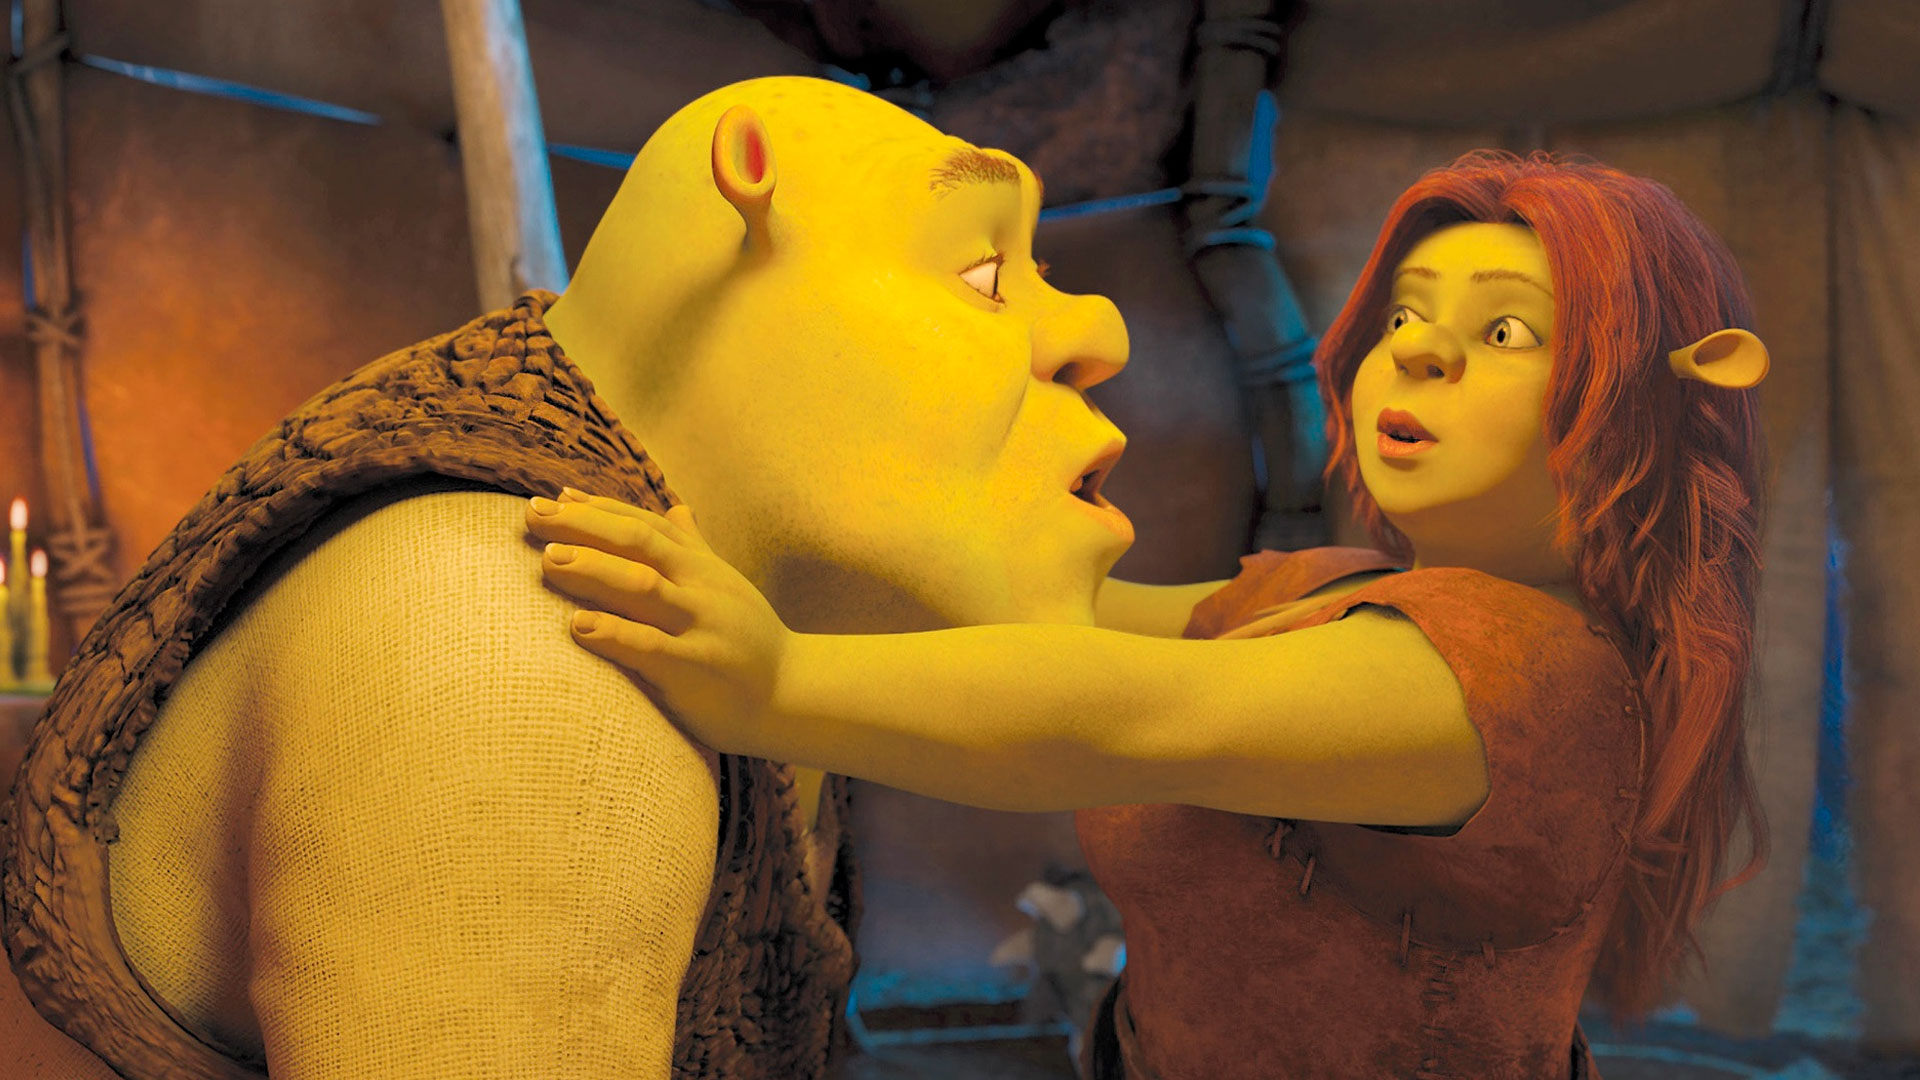 Photos of shrek fucked hard by fiona fucked scene